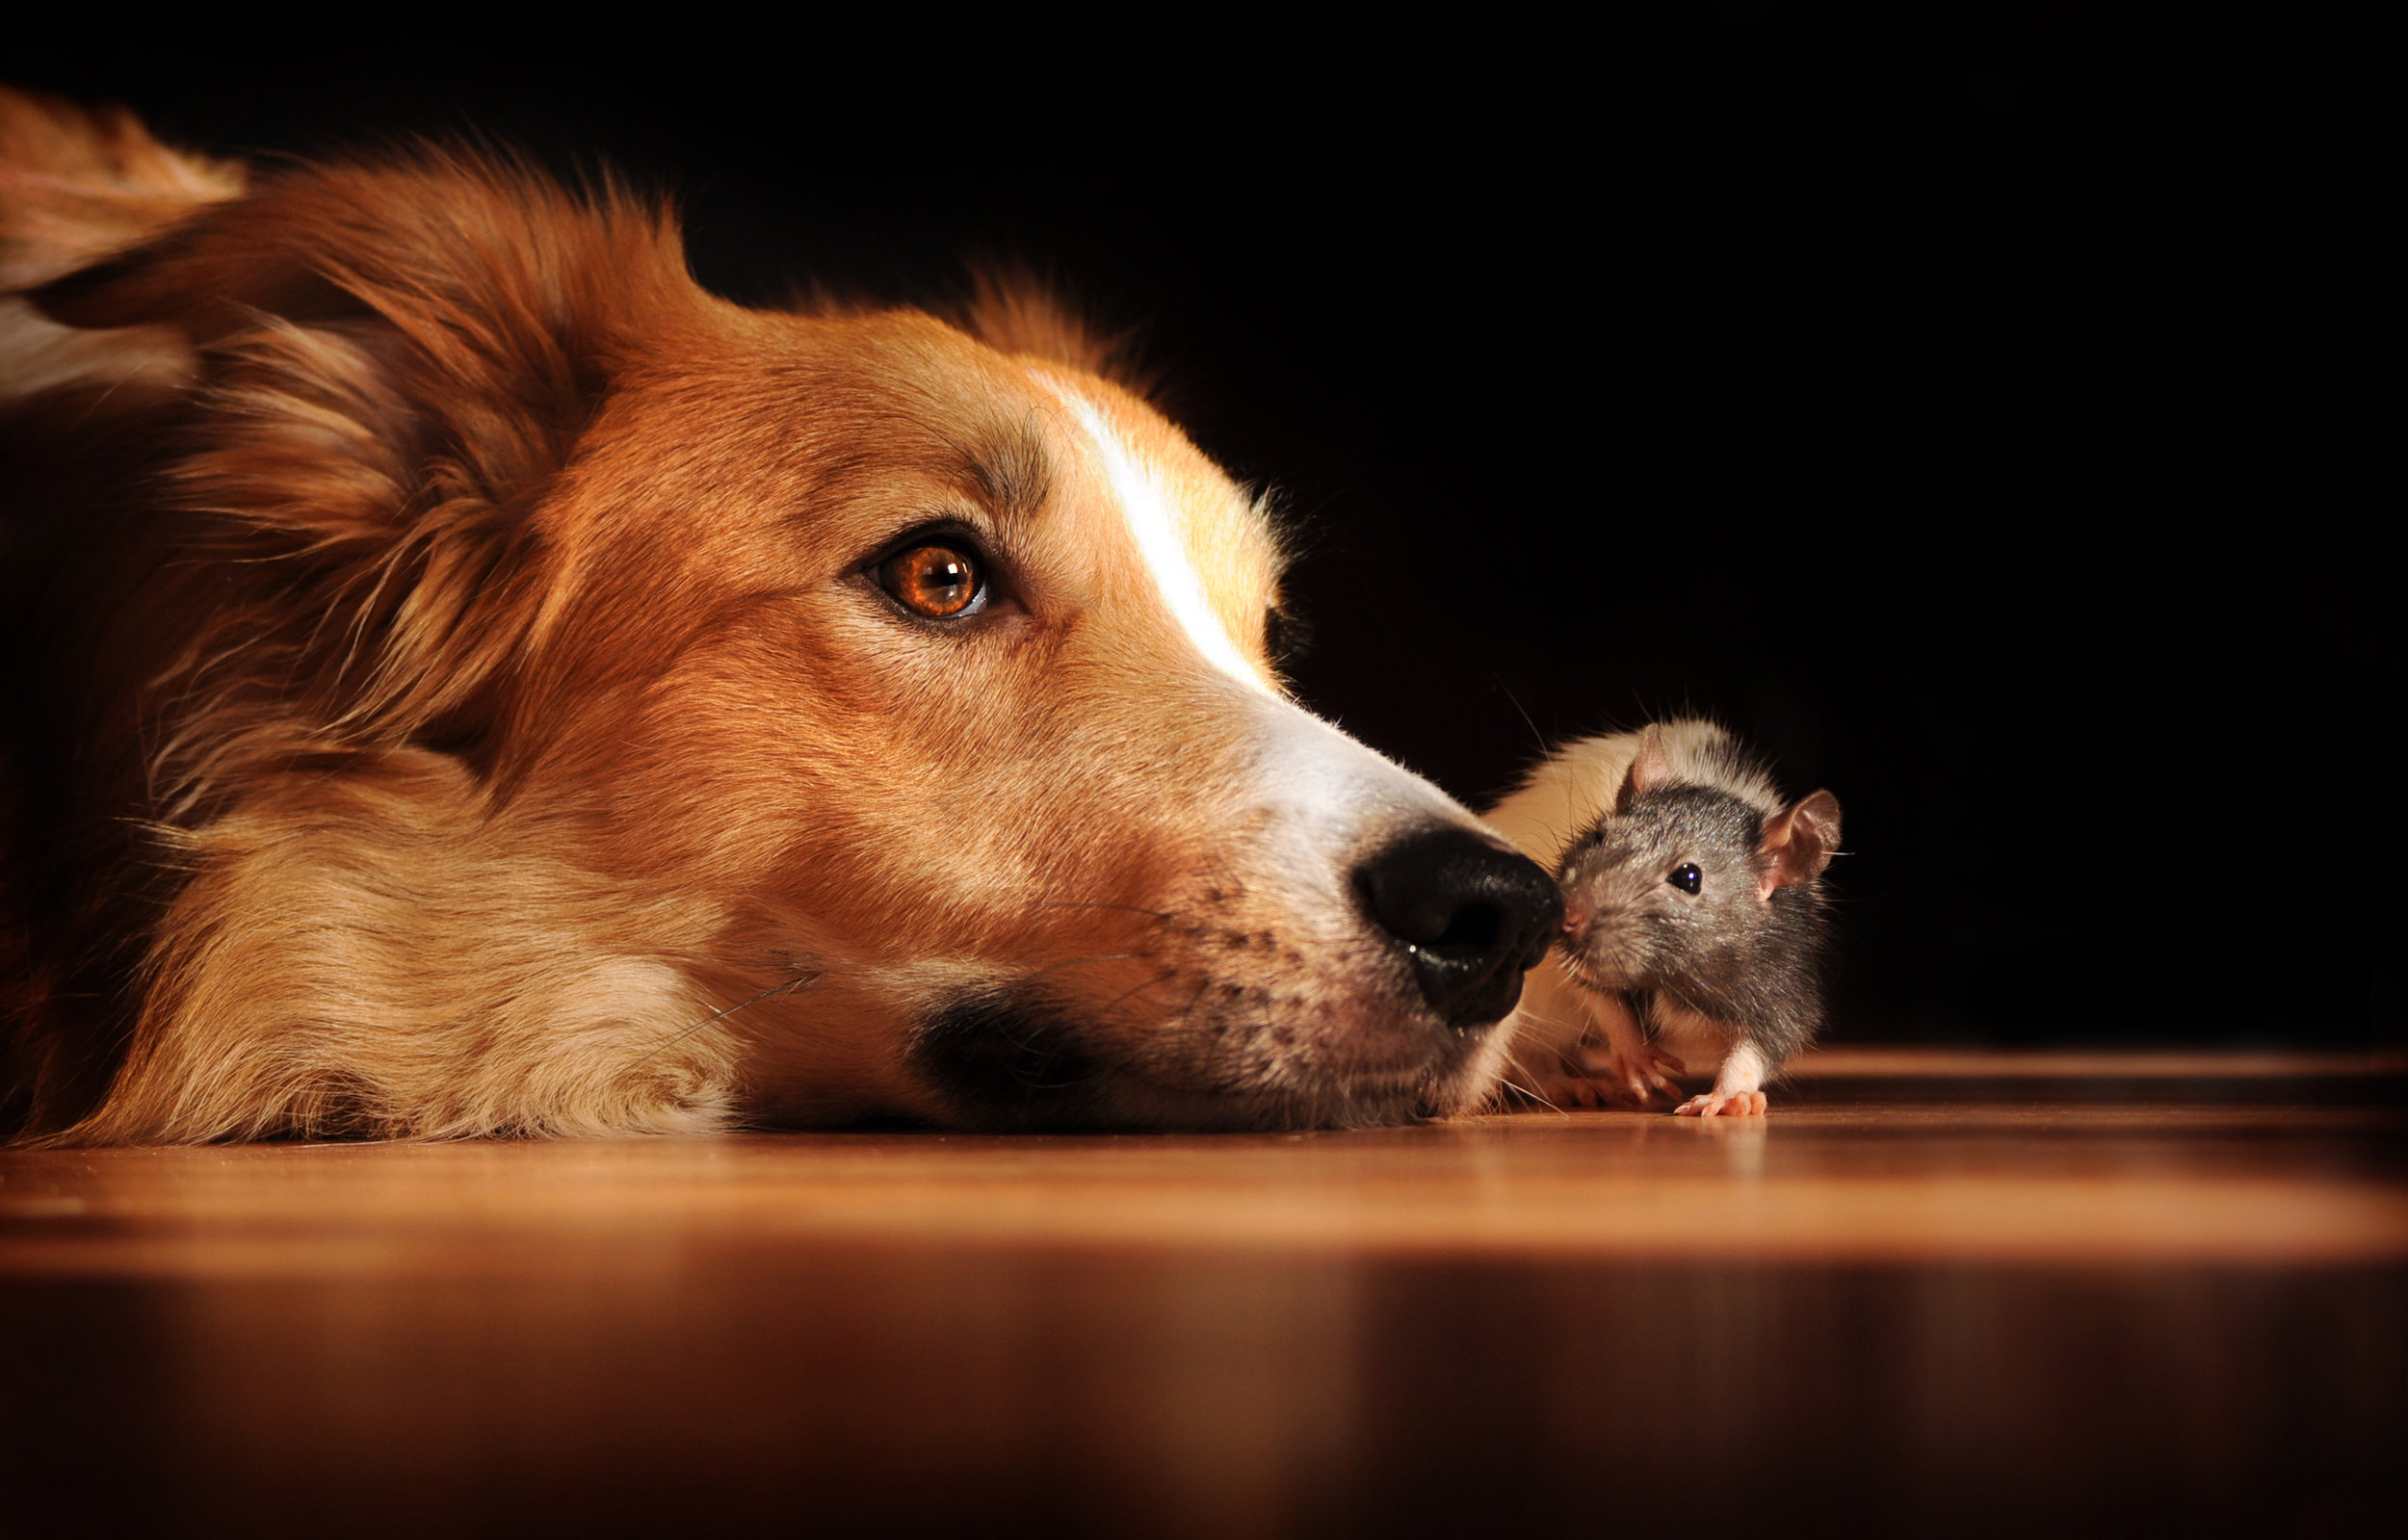 Dog and mouse cute APL